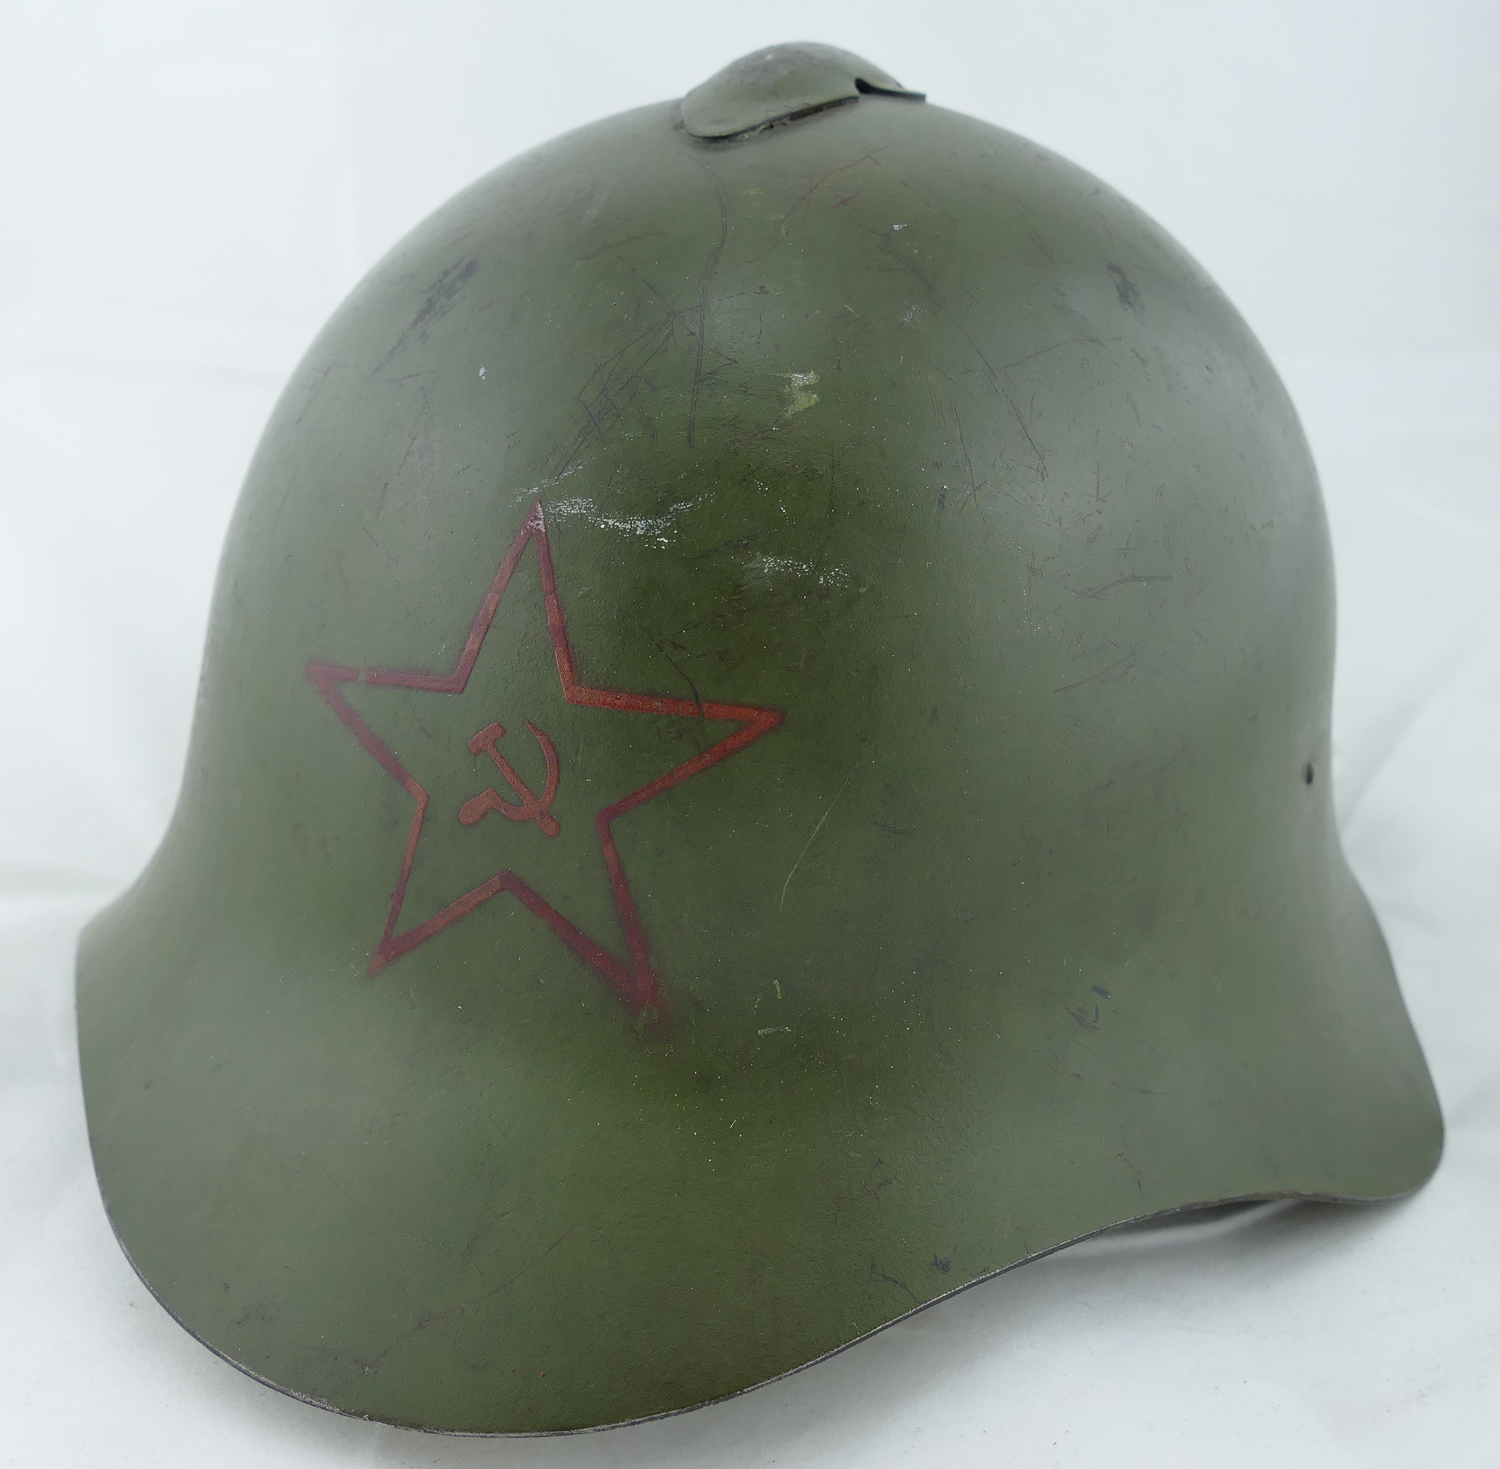 dating ww2 m1 helmets Early-wwii rayon hawley m1 helmet liner (restoration candidate) the liner retains non-painted aluminum rectangular washers and remnants of a first pattern rayon suspension and stationary leather liner strap, dating its production from mid-1941 to mid-1942.